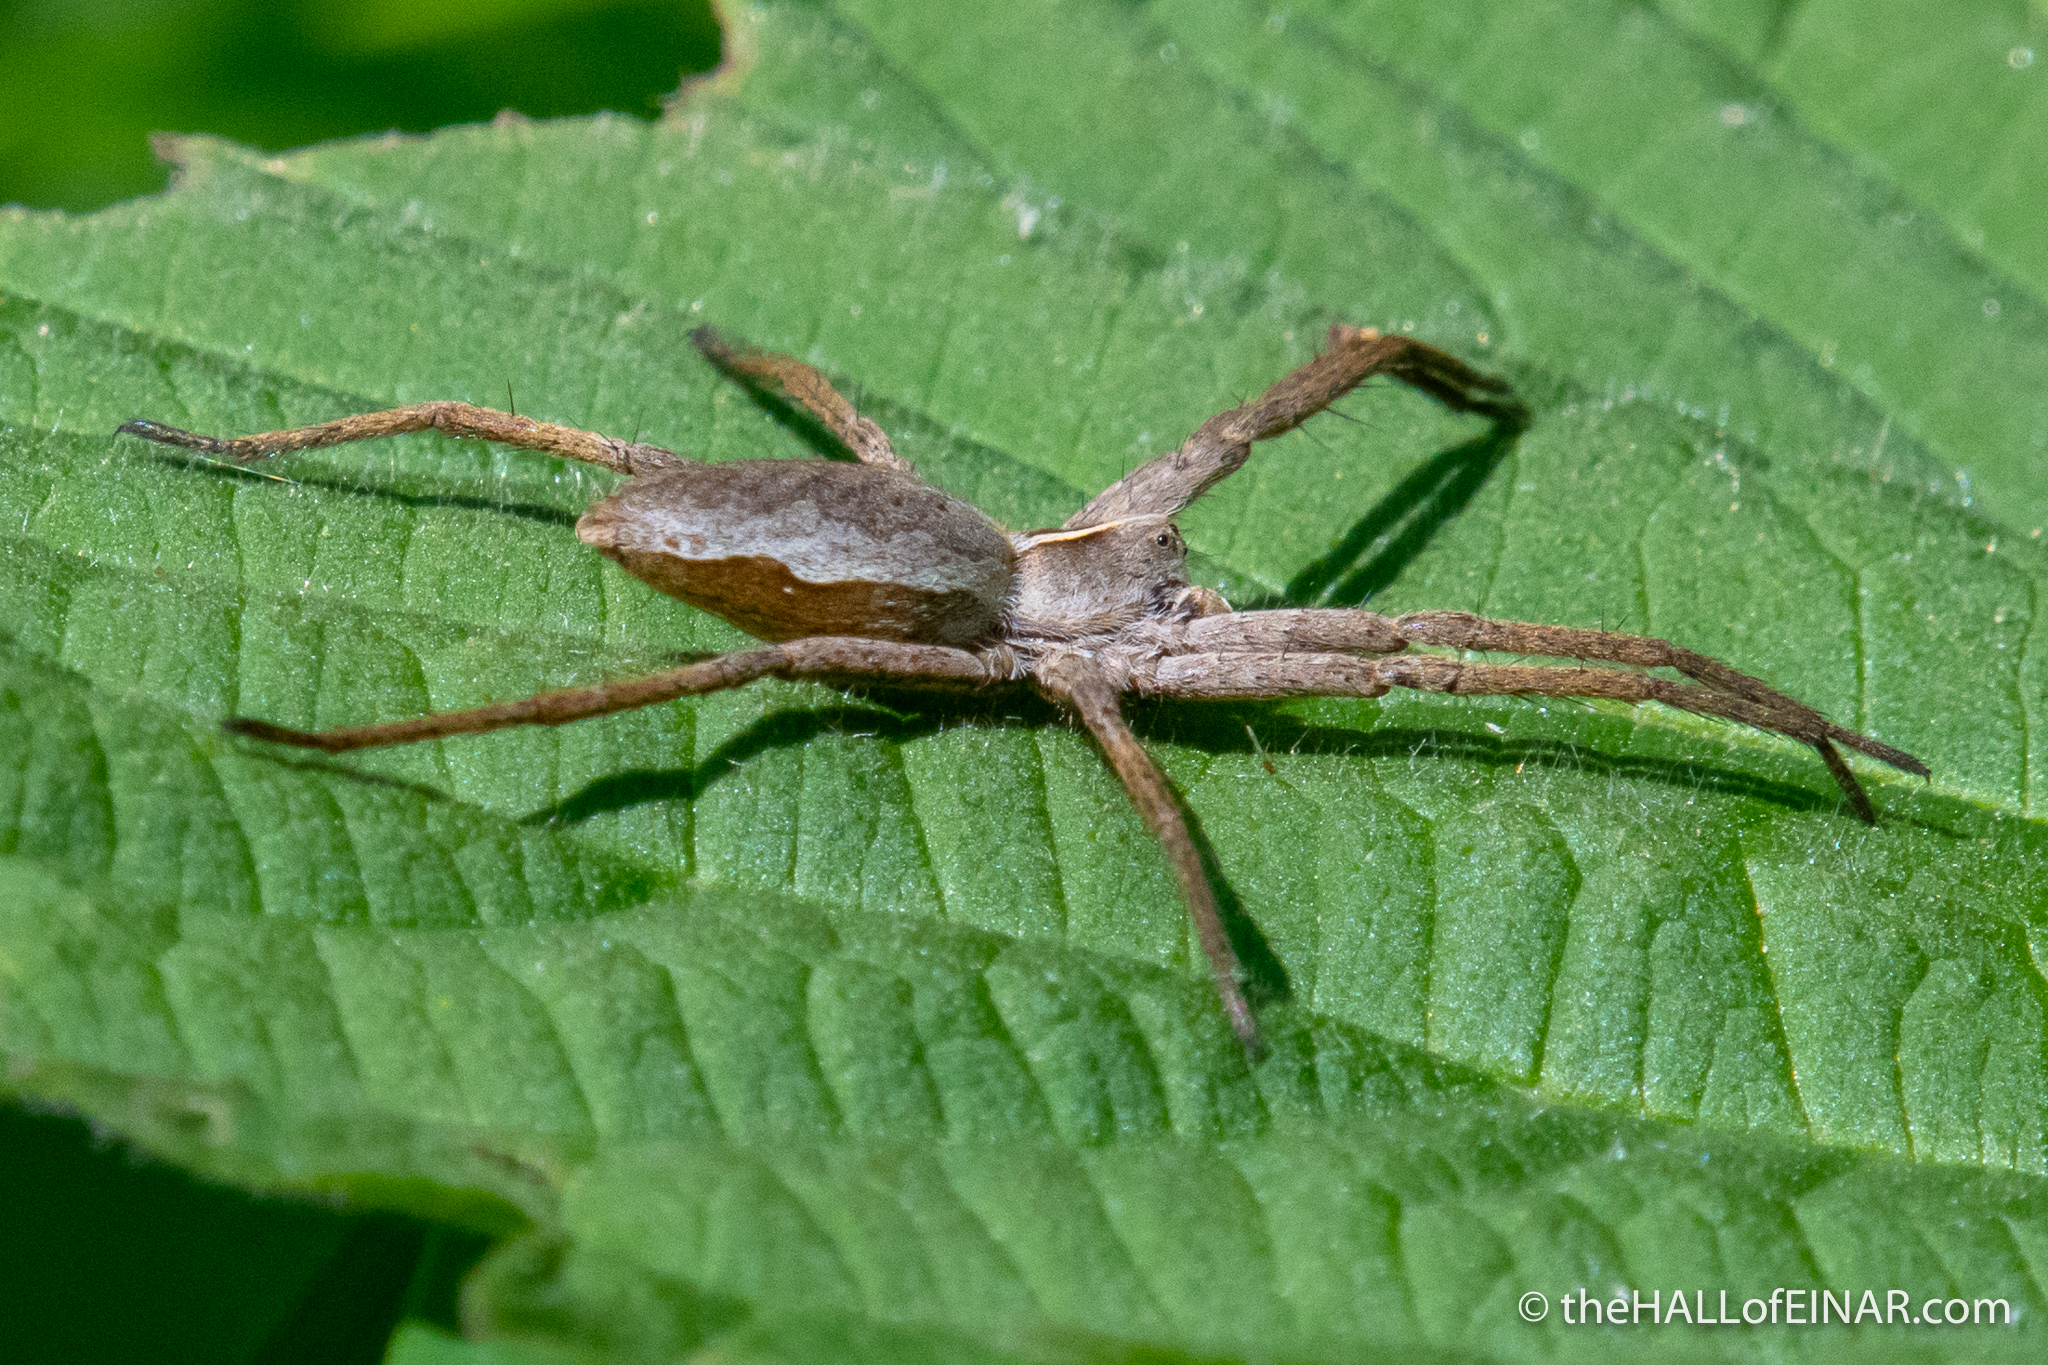 Nursery Web Spider - The Hall of Einar - photograph (c) David Bailey (not the)